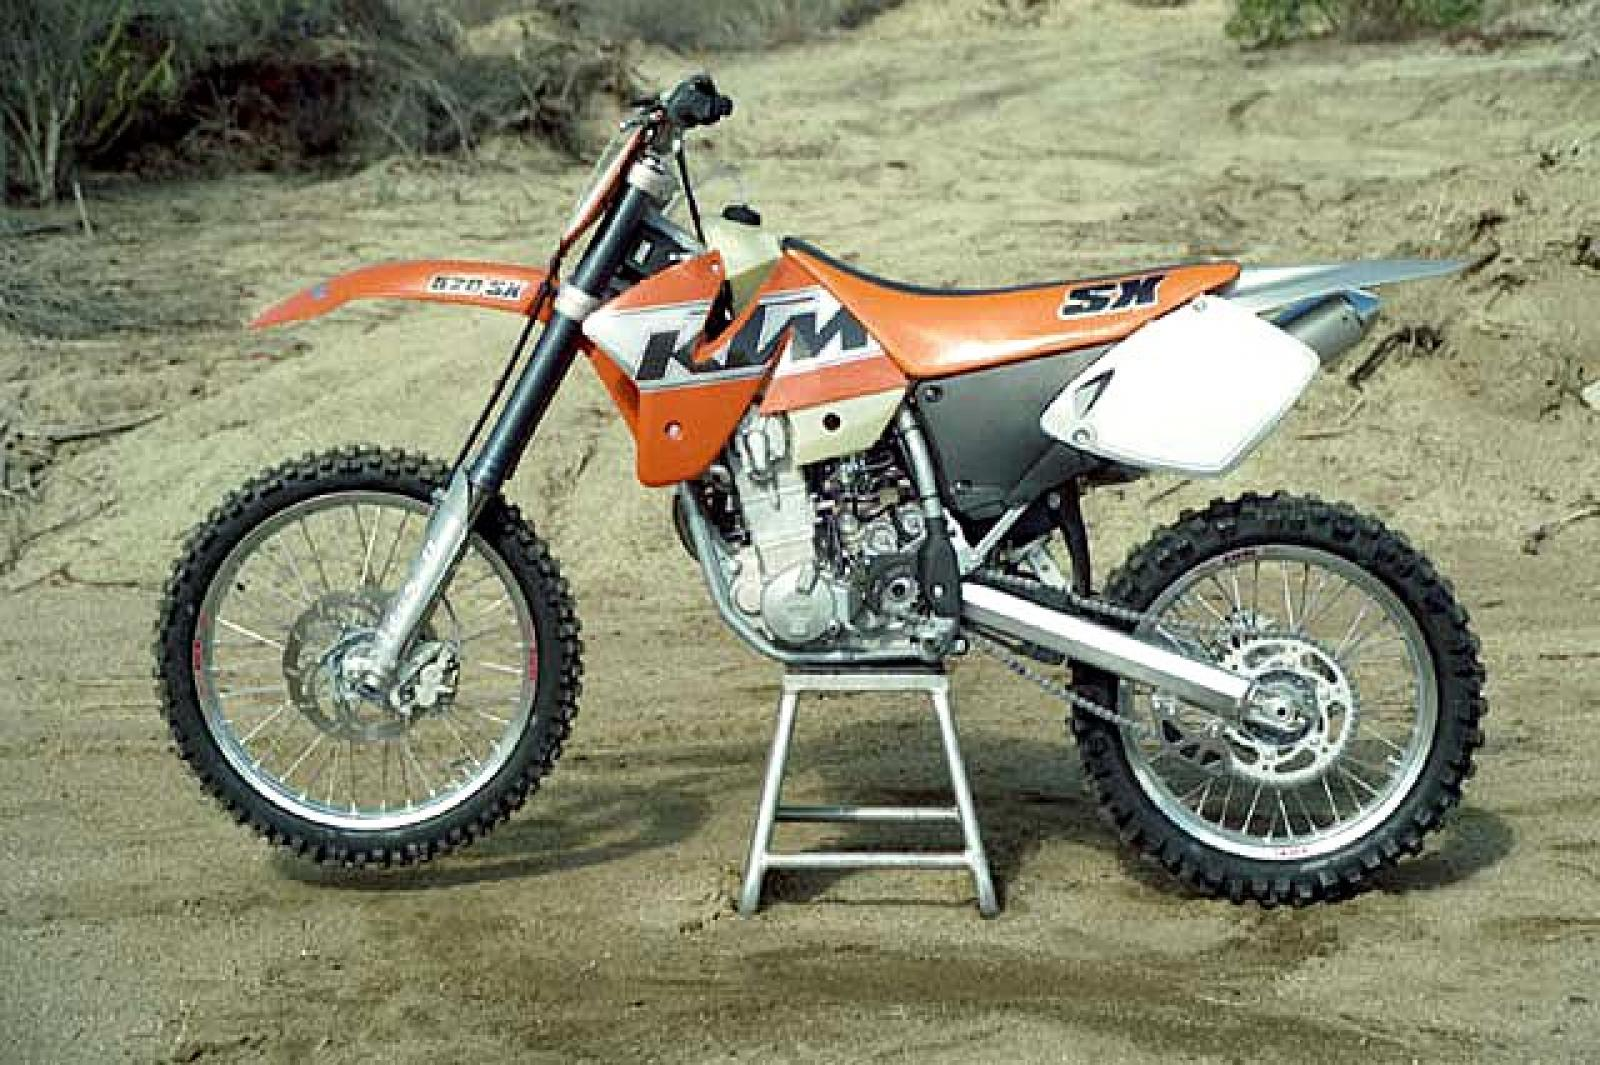 hight resolution of ktm 520 sx racing 2000 1 800 1024 1280 1600 origin